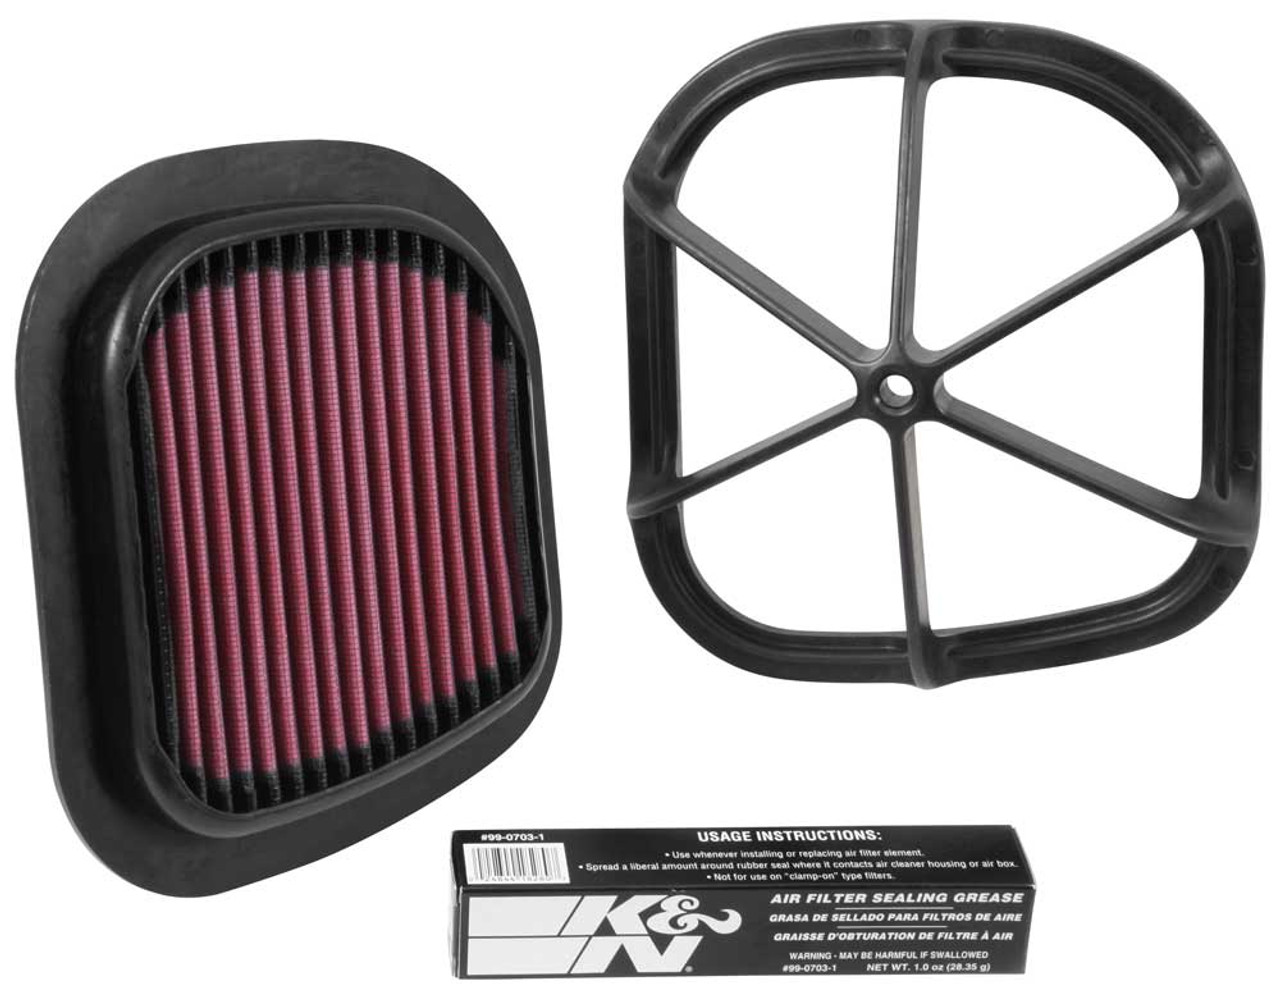 K&N Replacement Air Filter KTM 450 SX-F; 2013